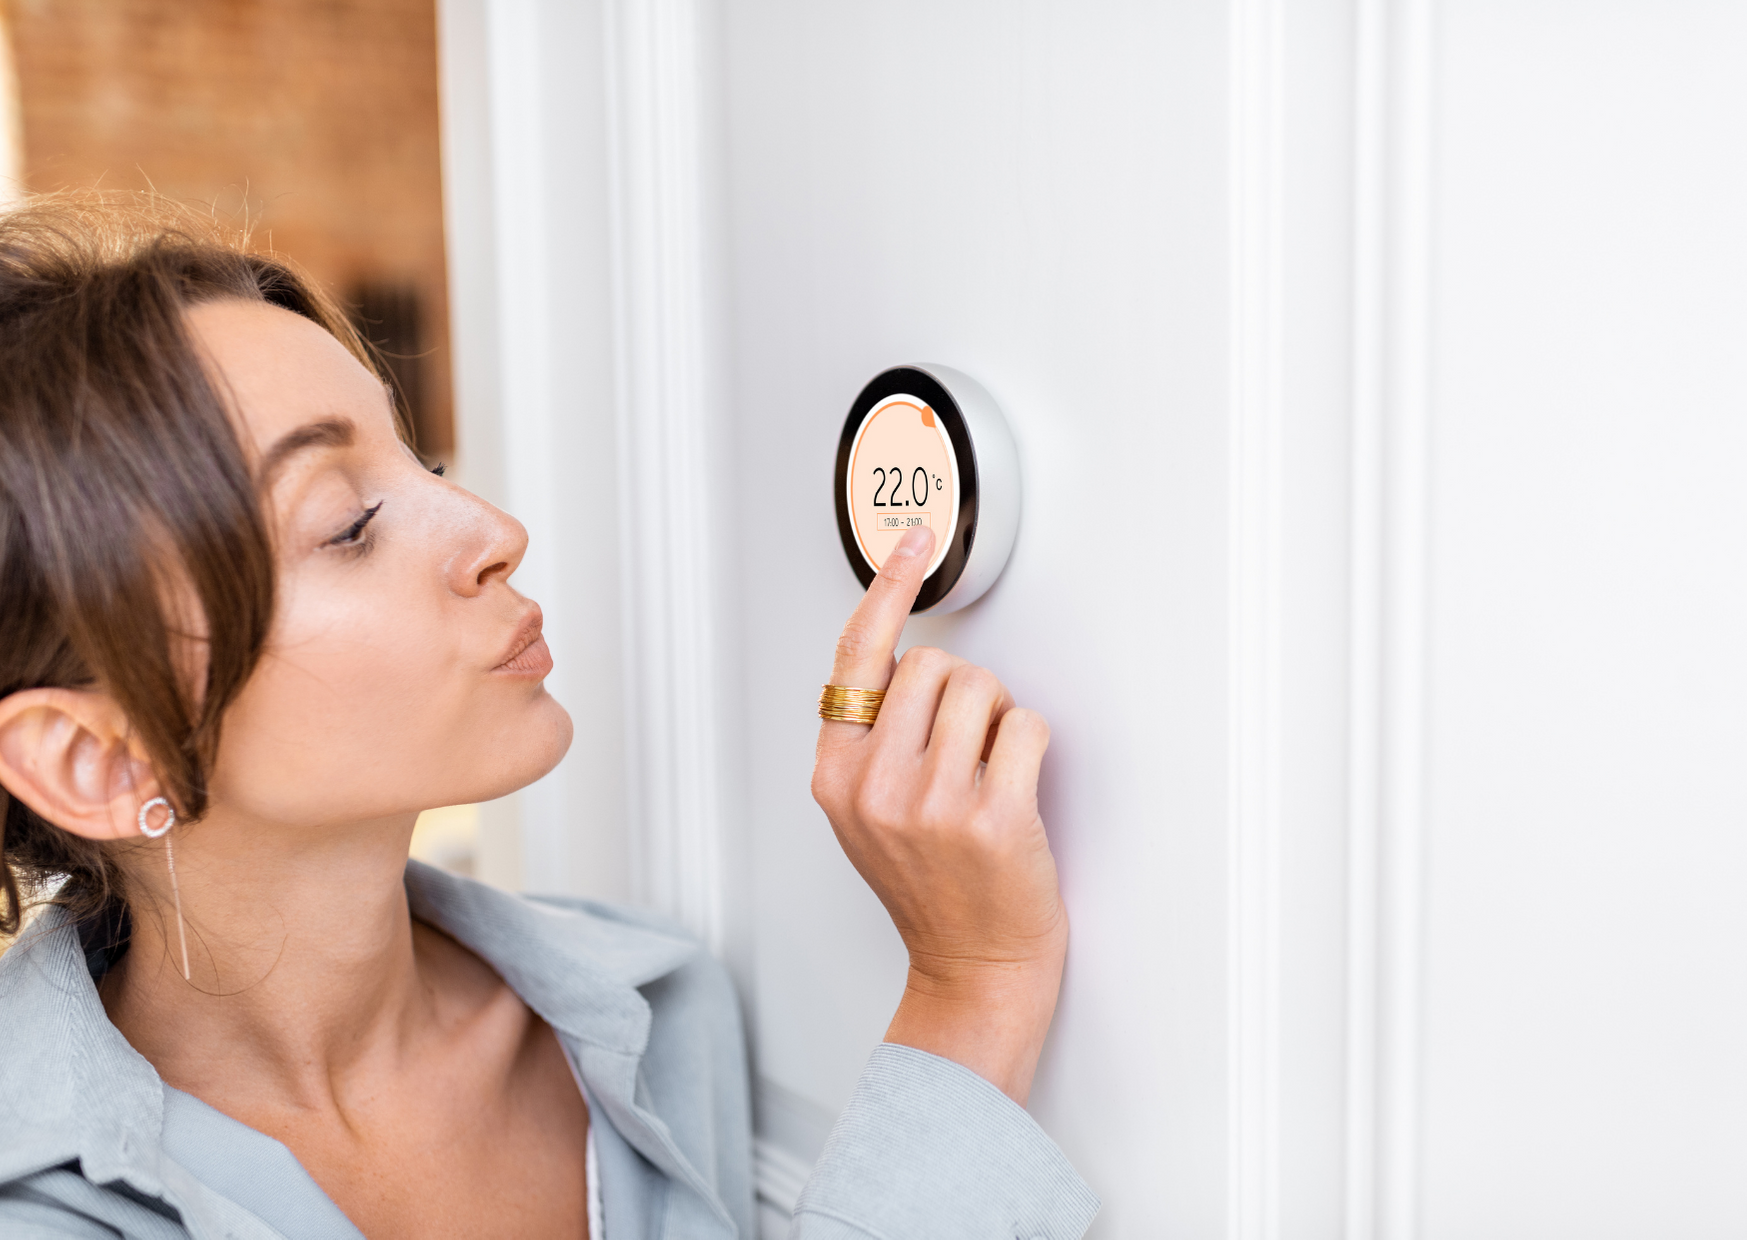 Women setting up the smart thermostats